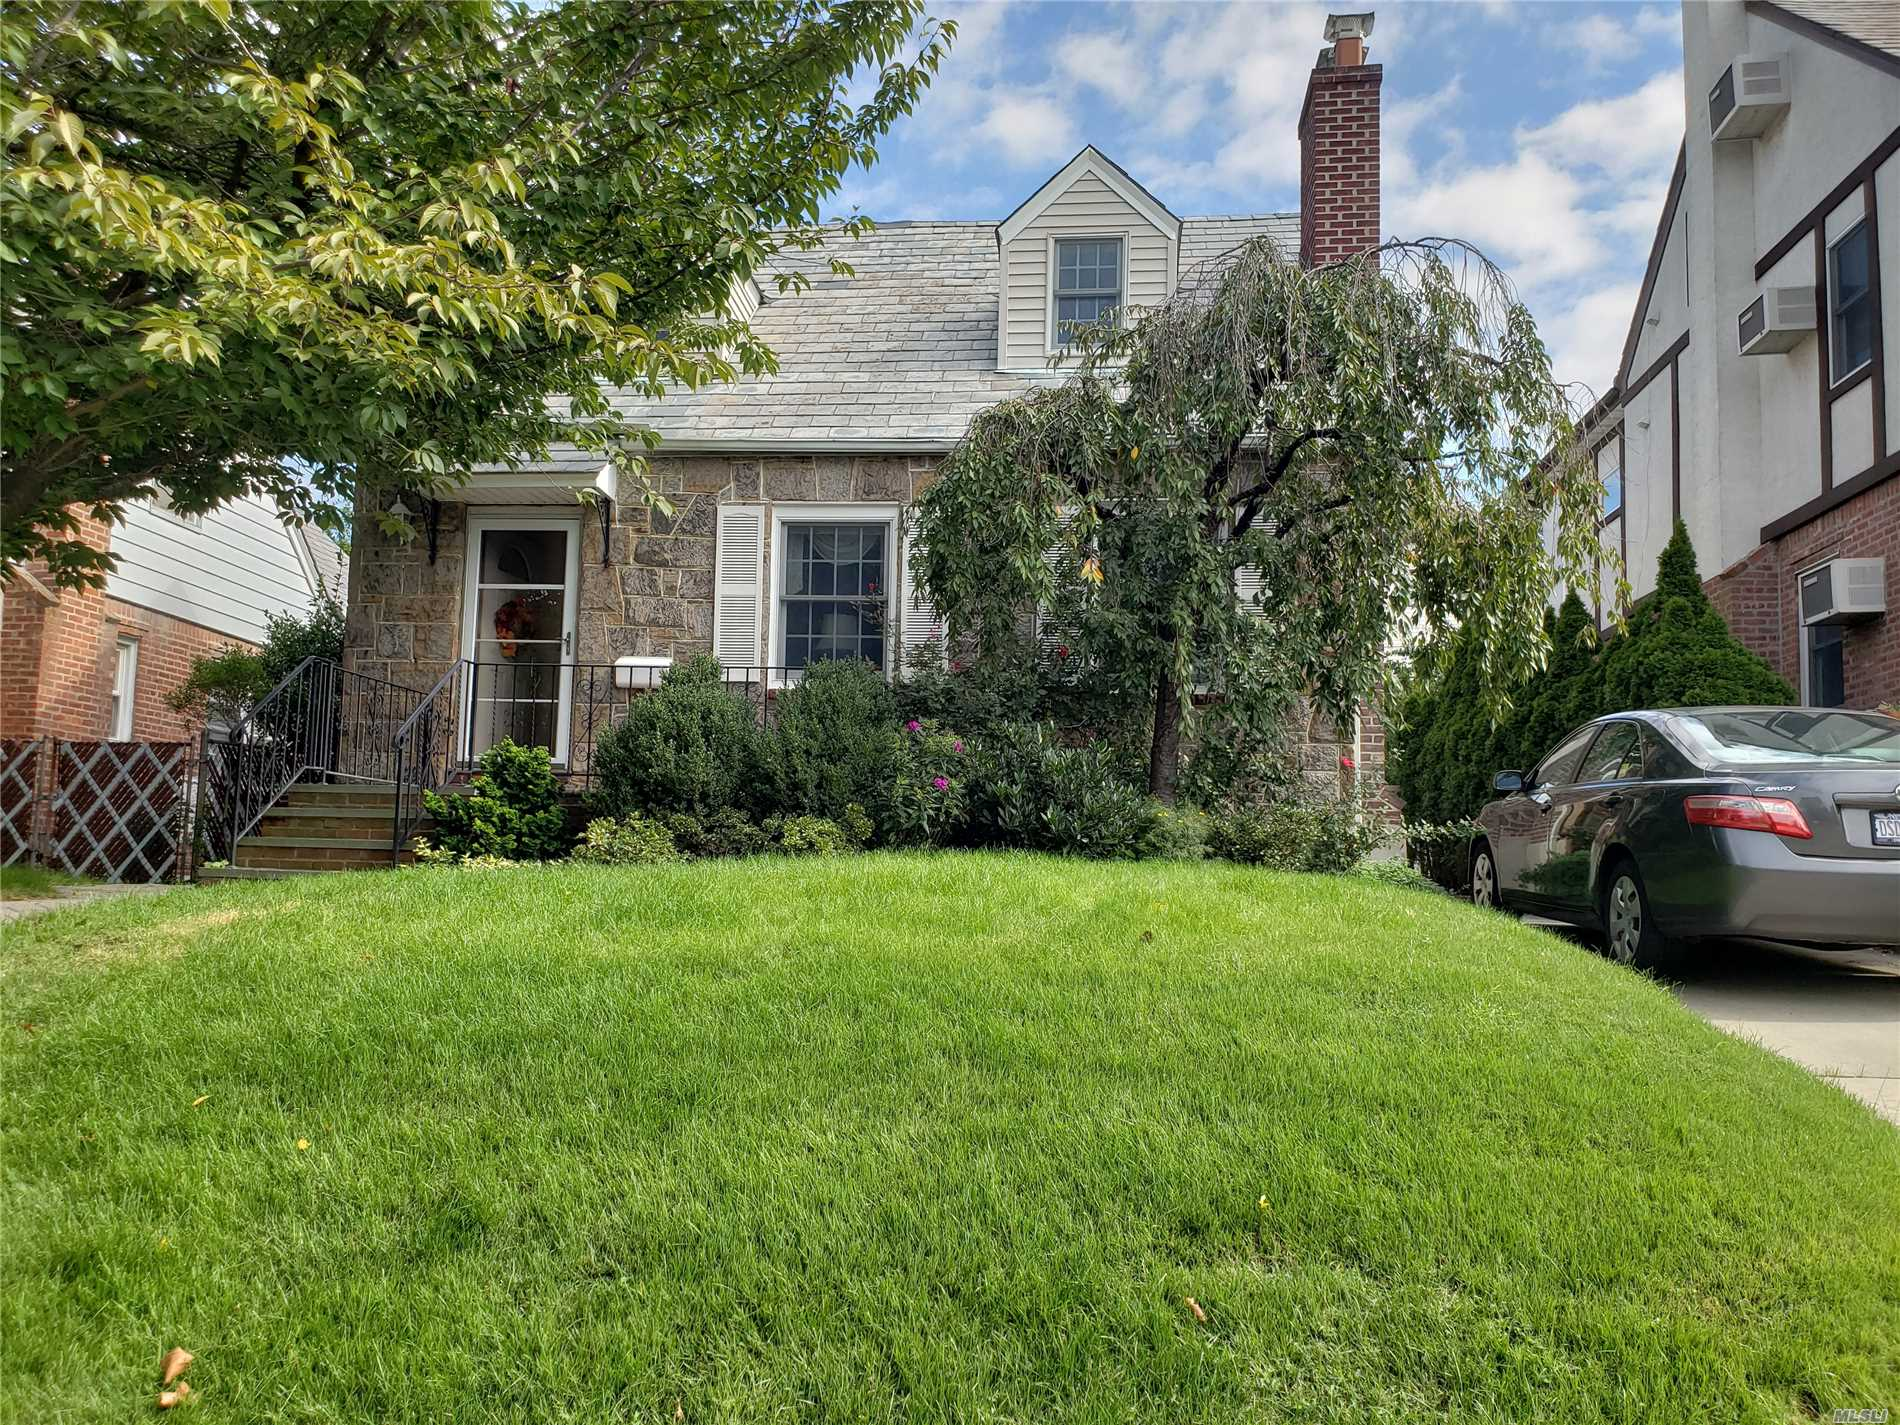 Photo of home for sale at 53-19 211 St, Bayside NY